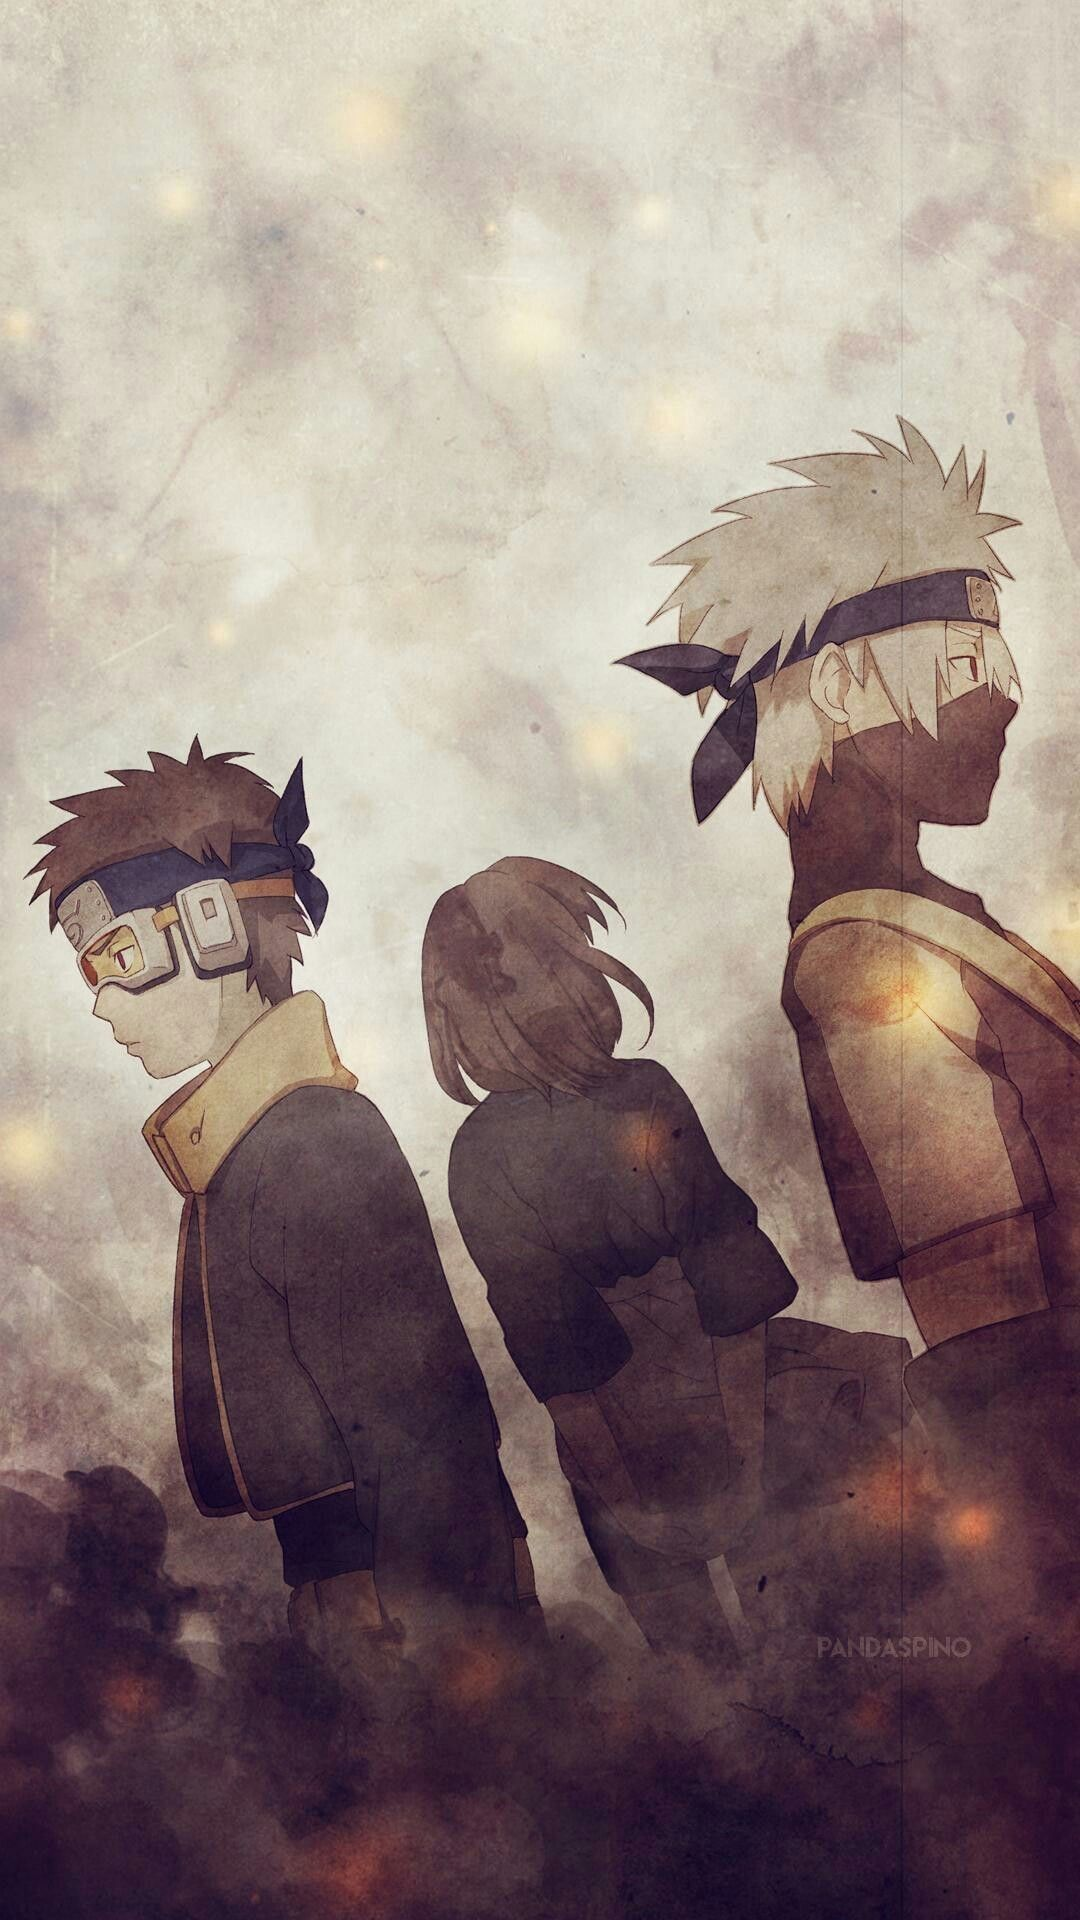 Res 1080x1920 Kakashi Obito Y Rin Mobile Wallpaper Naruto Wallpaper Naruto Shippuden Naruto And Sasuke Wallpaper Naruto Wallpaper